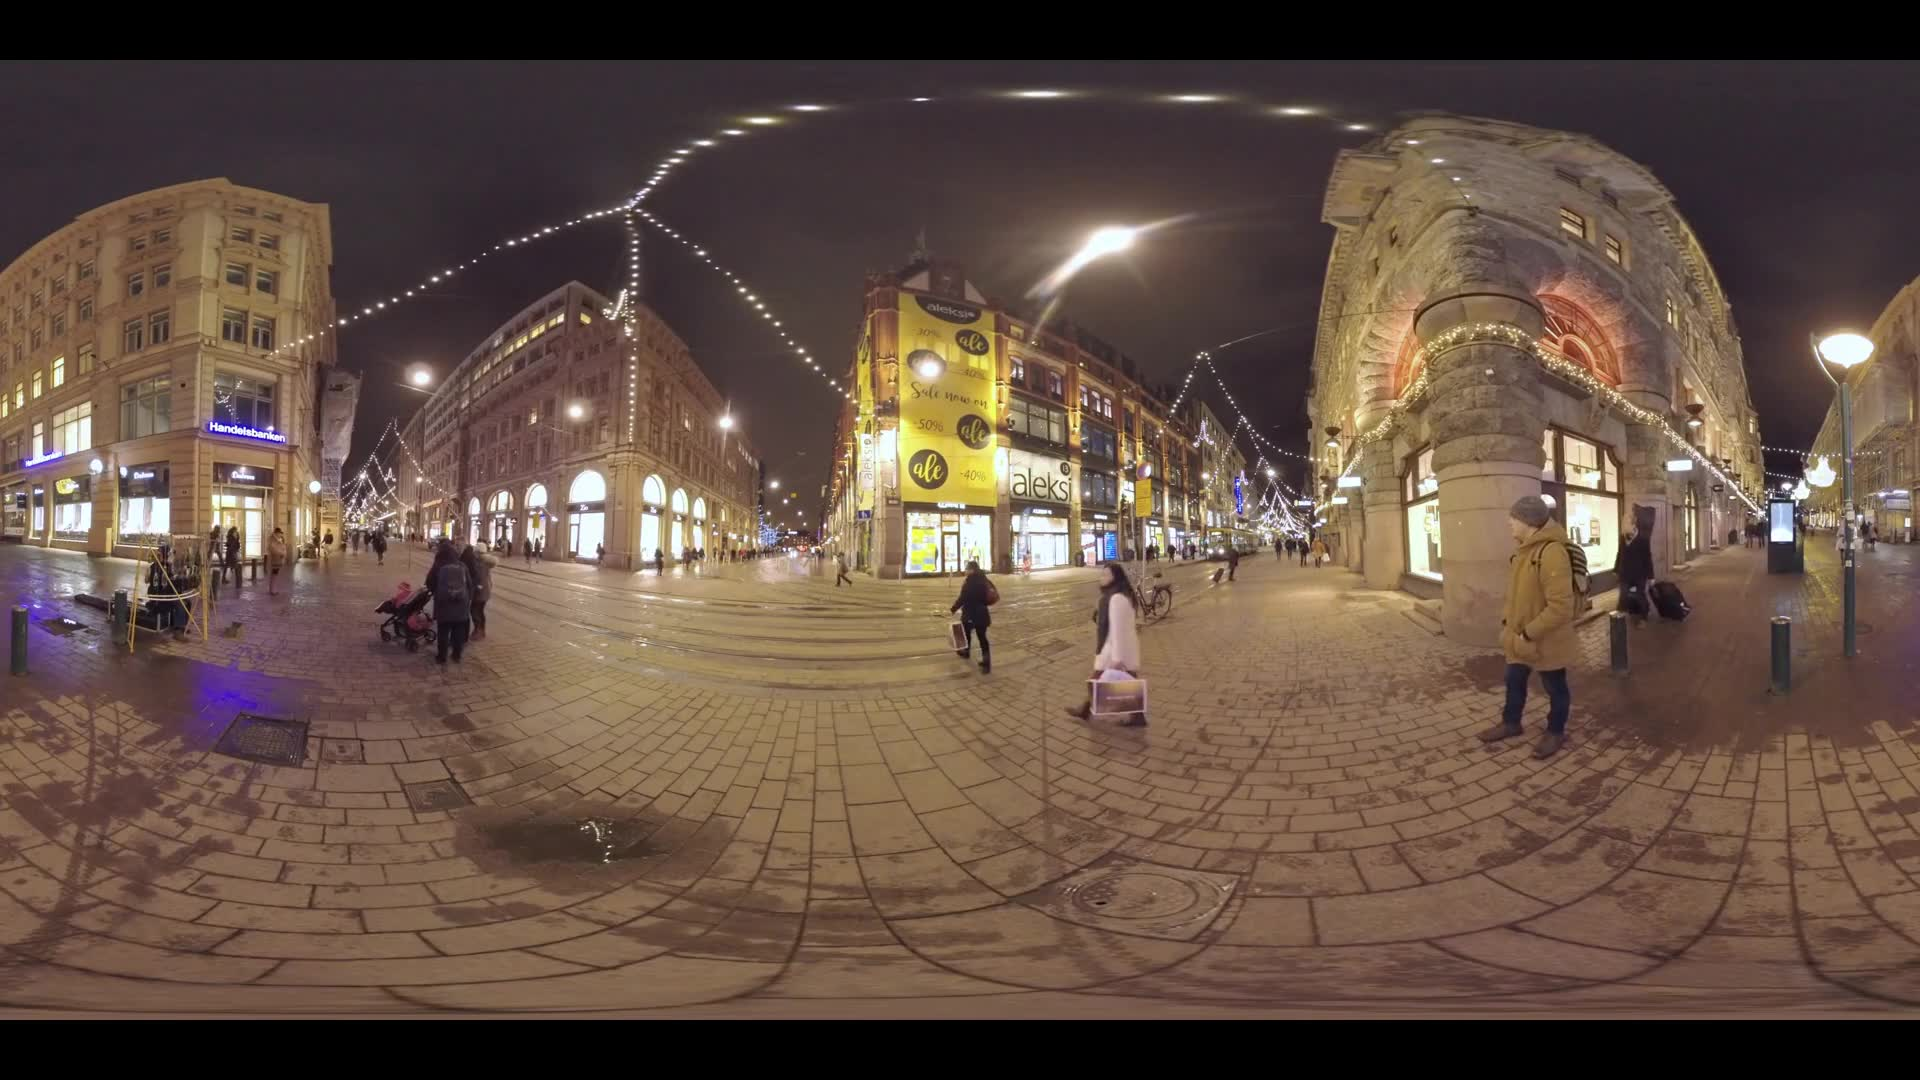 HELSINKI, FINLAND- JANUARY 05, 2016: 360 VR video. Night cityscape with people walking and tram traveling in Aleksanterinkatu street illuminated with stores and Christmas lights